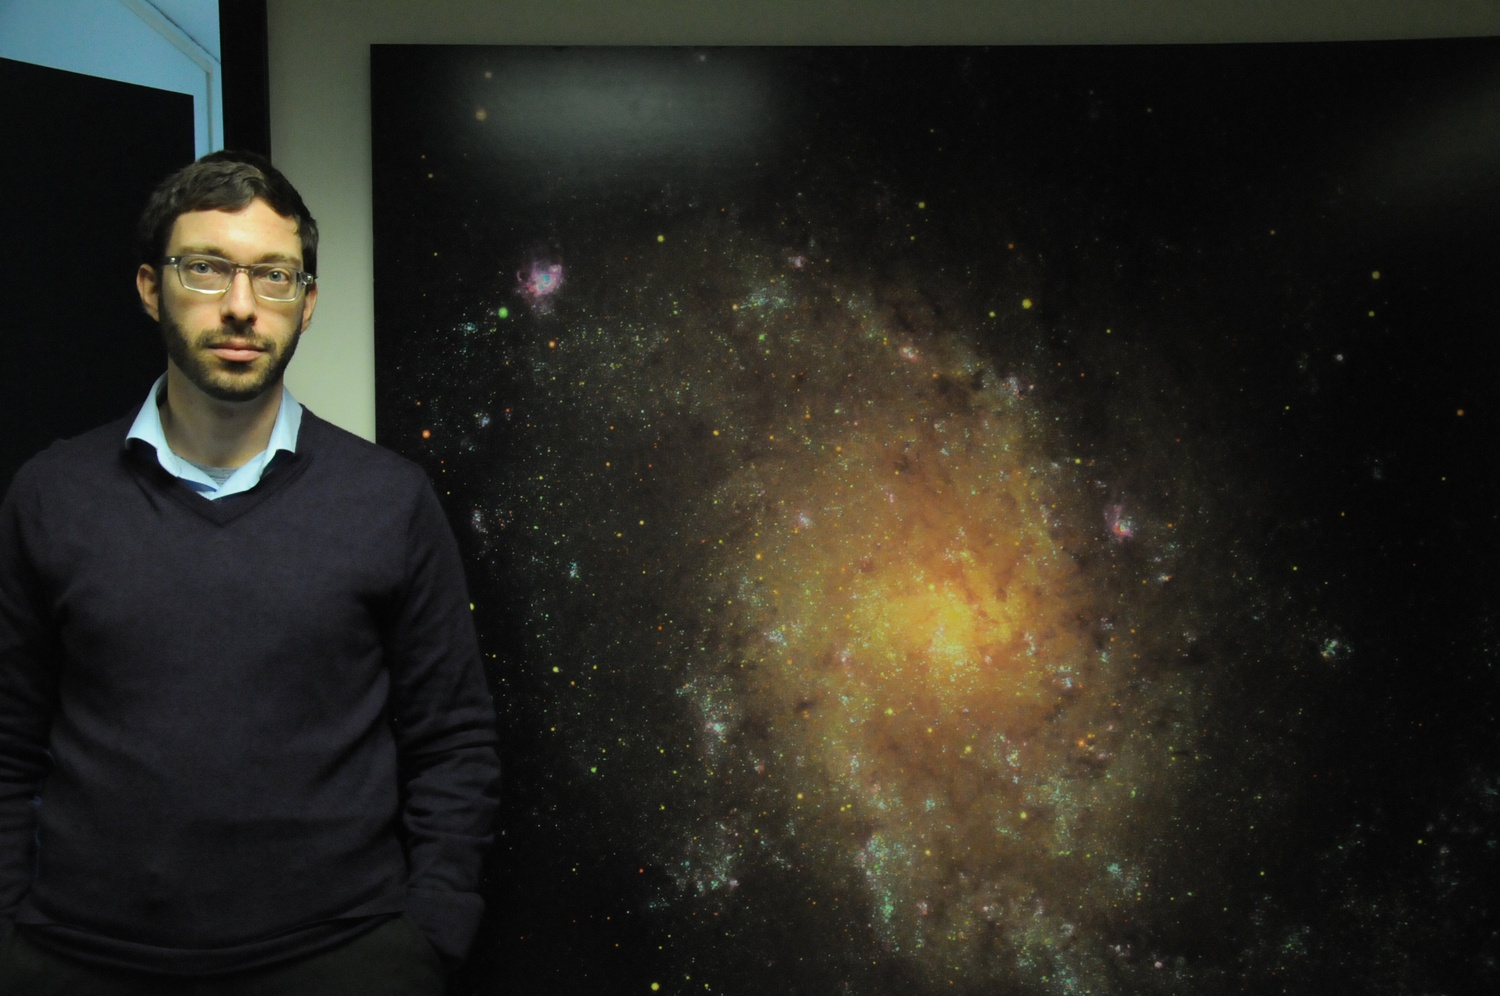 Or Graur is an Astronomy & Astrophysics Postdoctoral Fellow and the Director of the Harvard Science Research Mentoring Program.